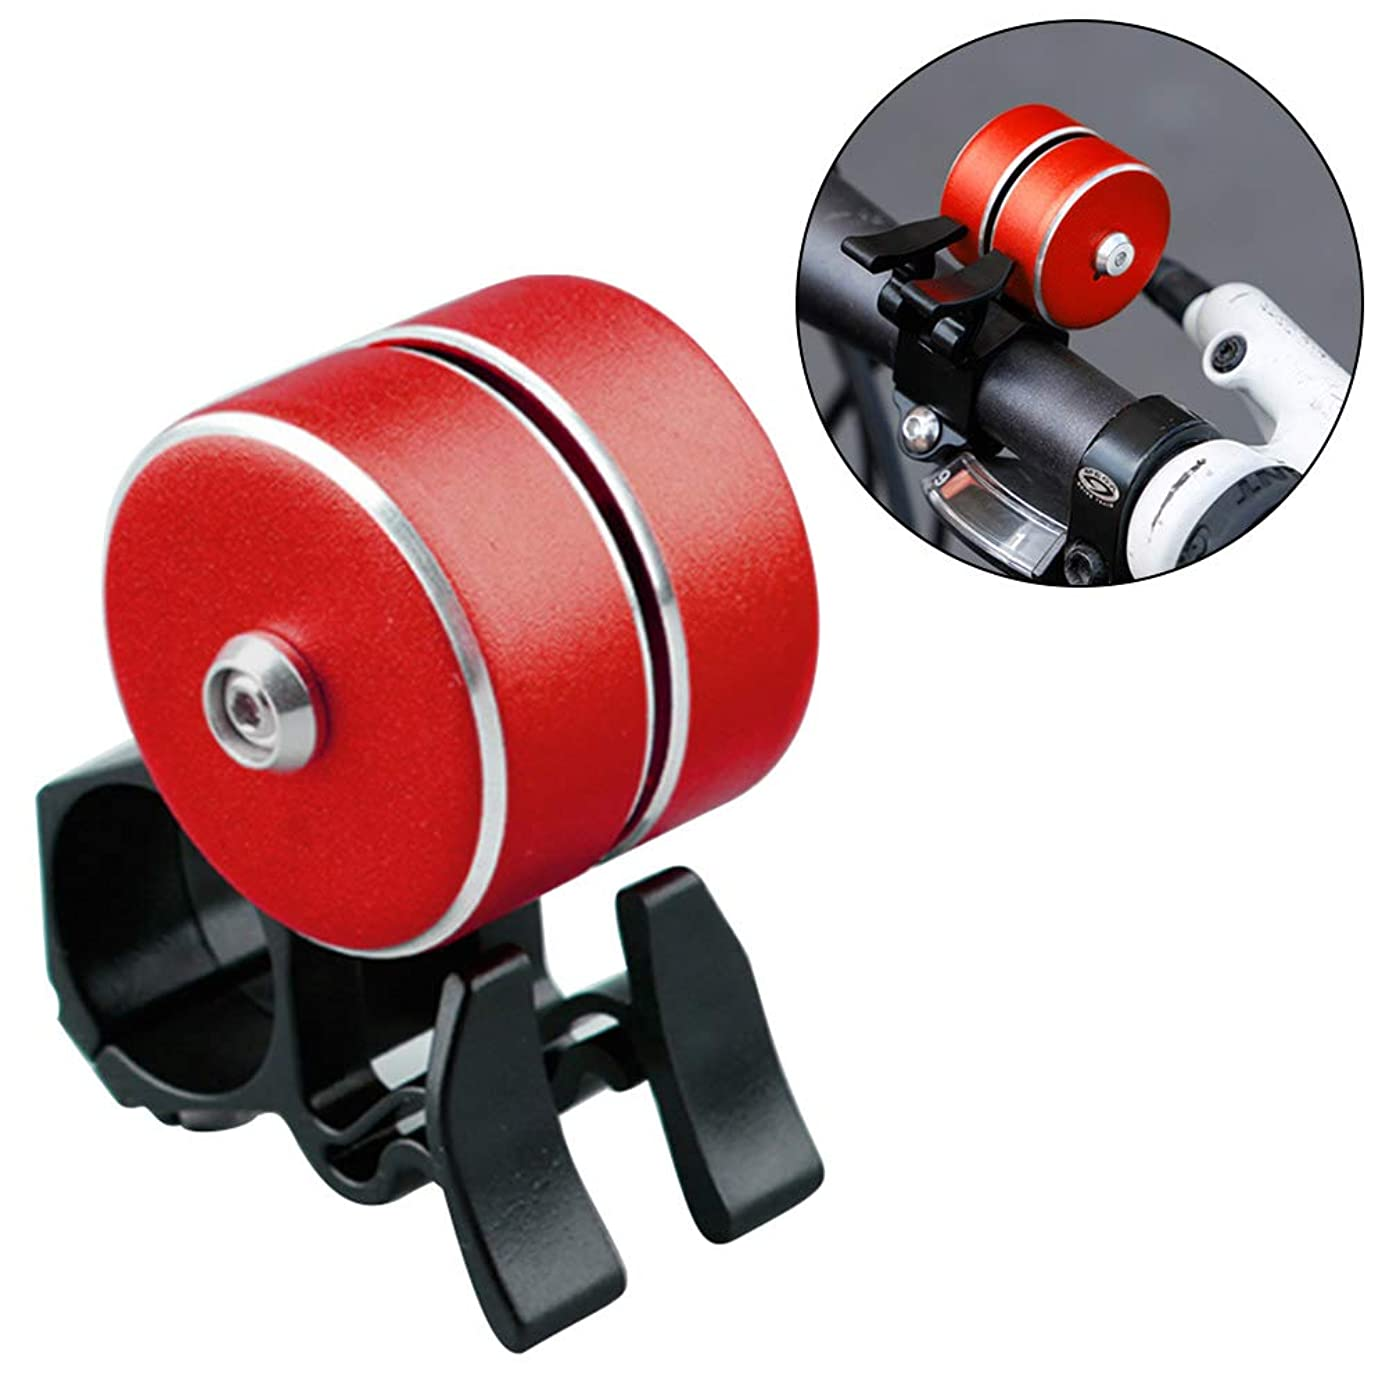 2Krmstr Aluminum Bike Bell,Loud Sound Bicycle Bell,Bike Ringer Bell,Bicycle Horn for Road Bike,Mountain Bike,Tricycle,Electric Bike